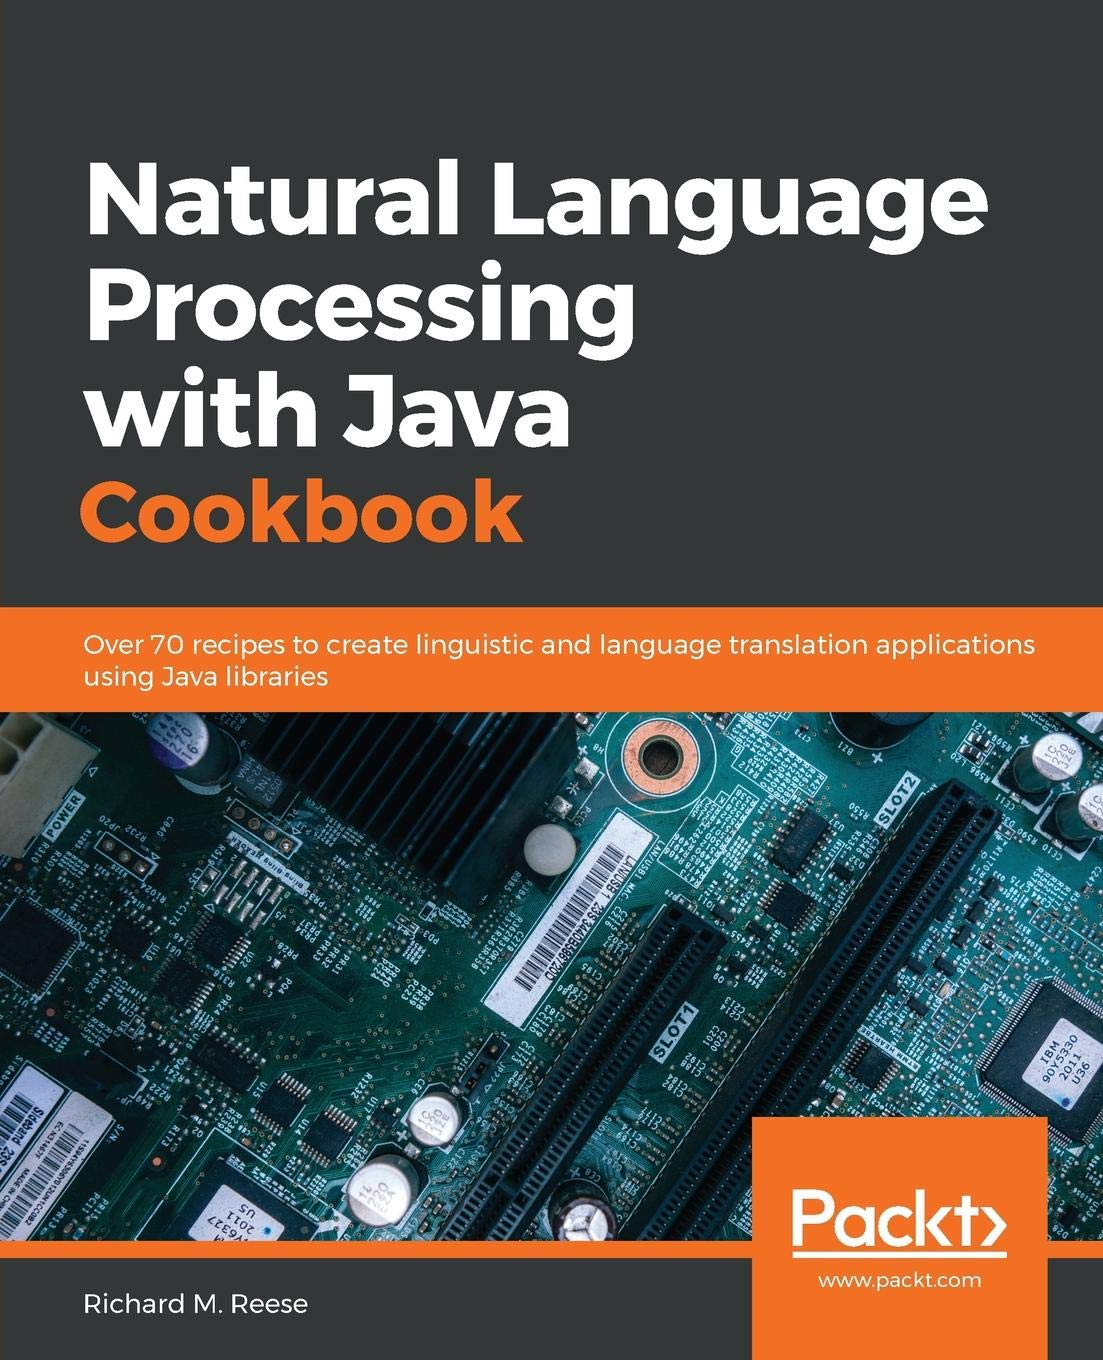 Natural Language Processing with Java Cookbook: Over 70 recipes to create linguistic and language translation applications using Java libraries